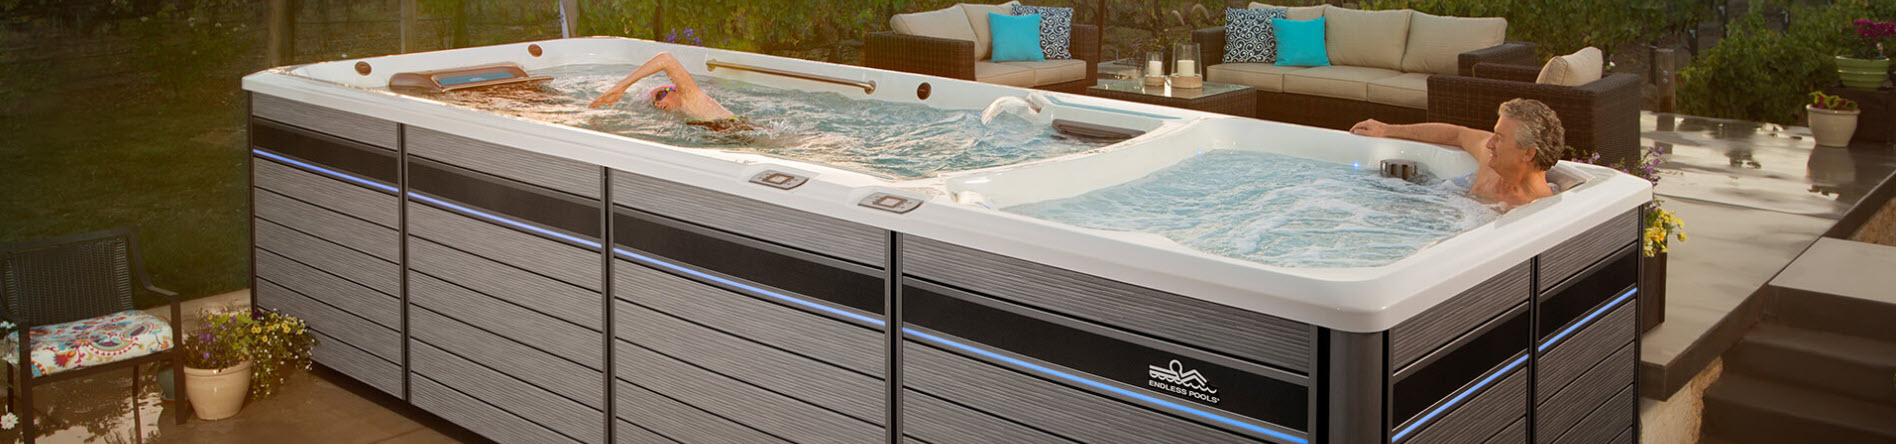 Top 3 Reasons to Buy a Swim Spa for the Home, Swim Spa Prices Billings